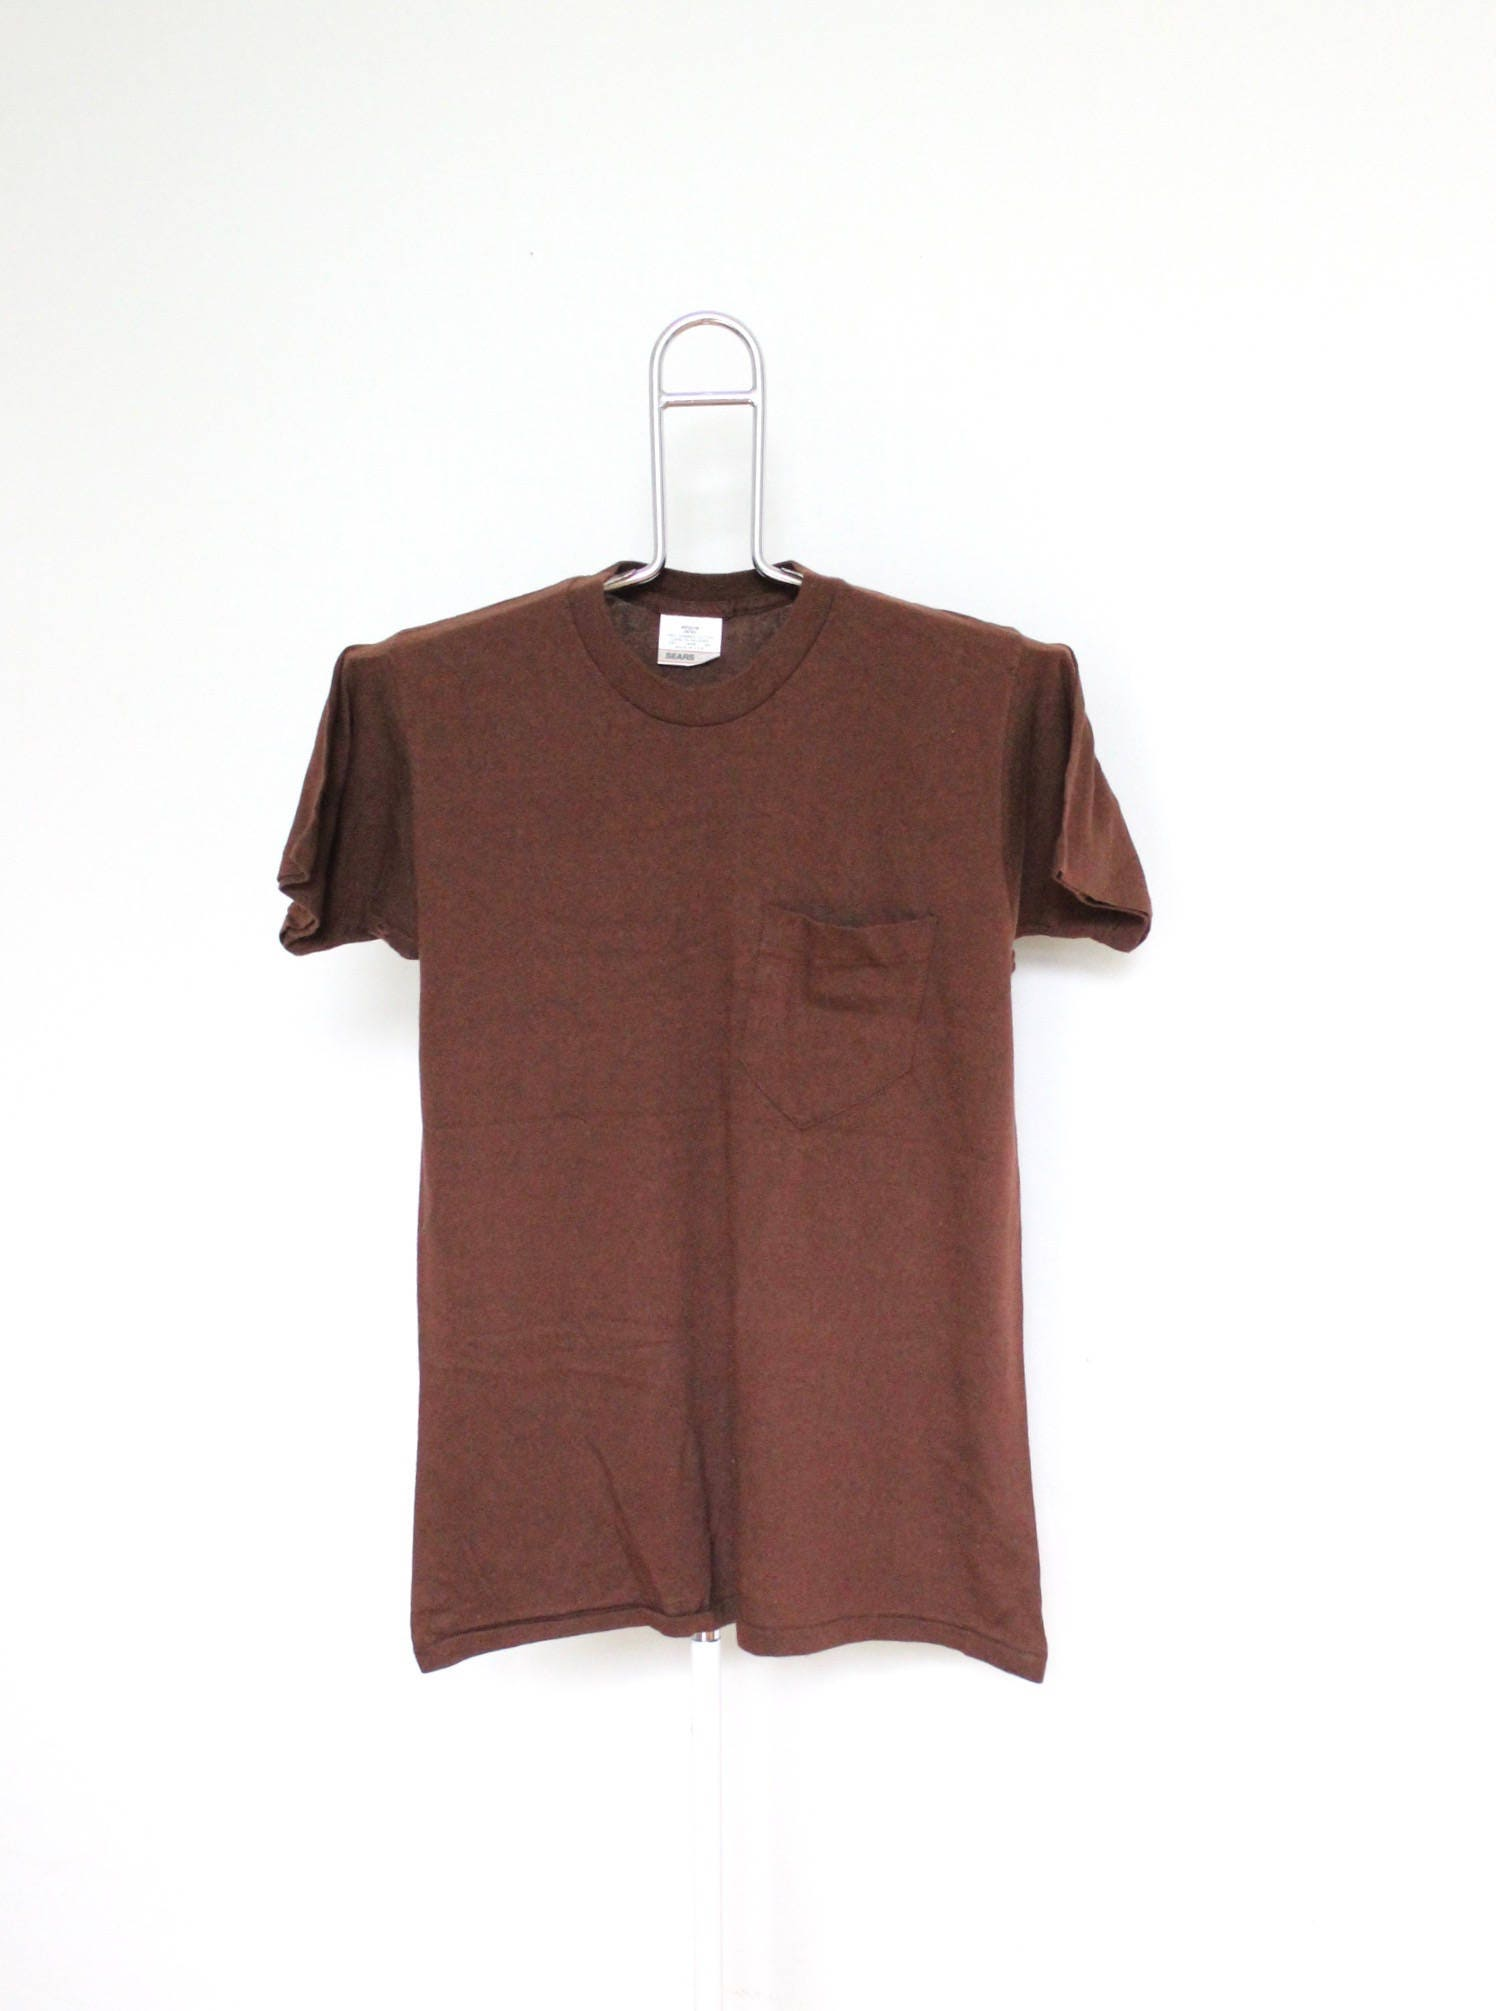 Chocolate brown plain pocket t shirt mens small unisex womens for Mens chocolate brown shirt